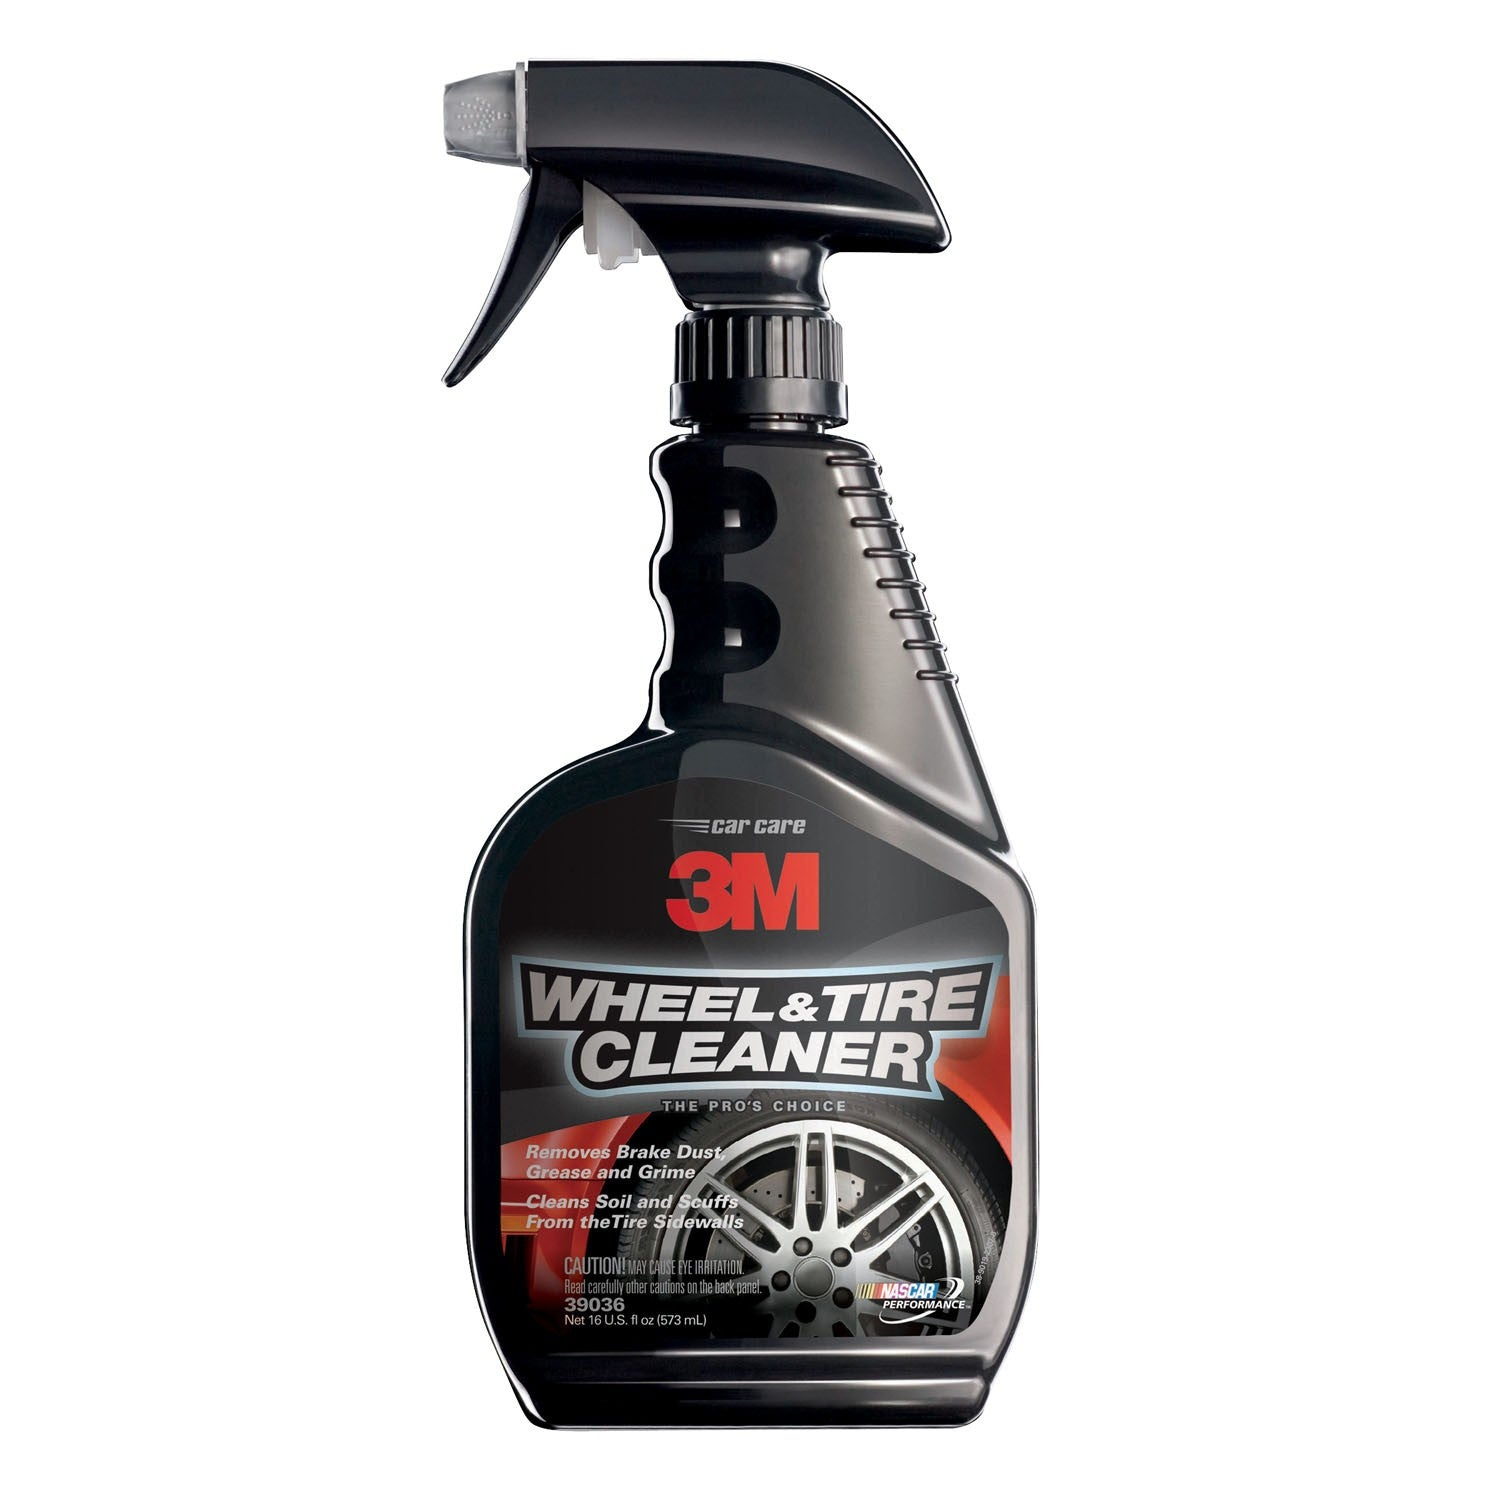 3M Wheel & Tire Cleaner, 16 oz./473ml